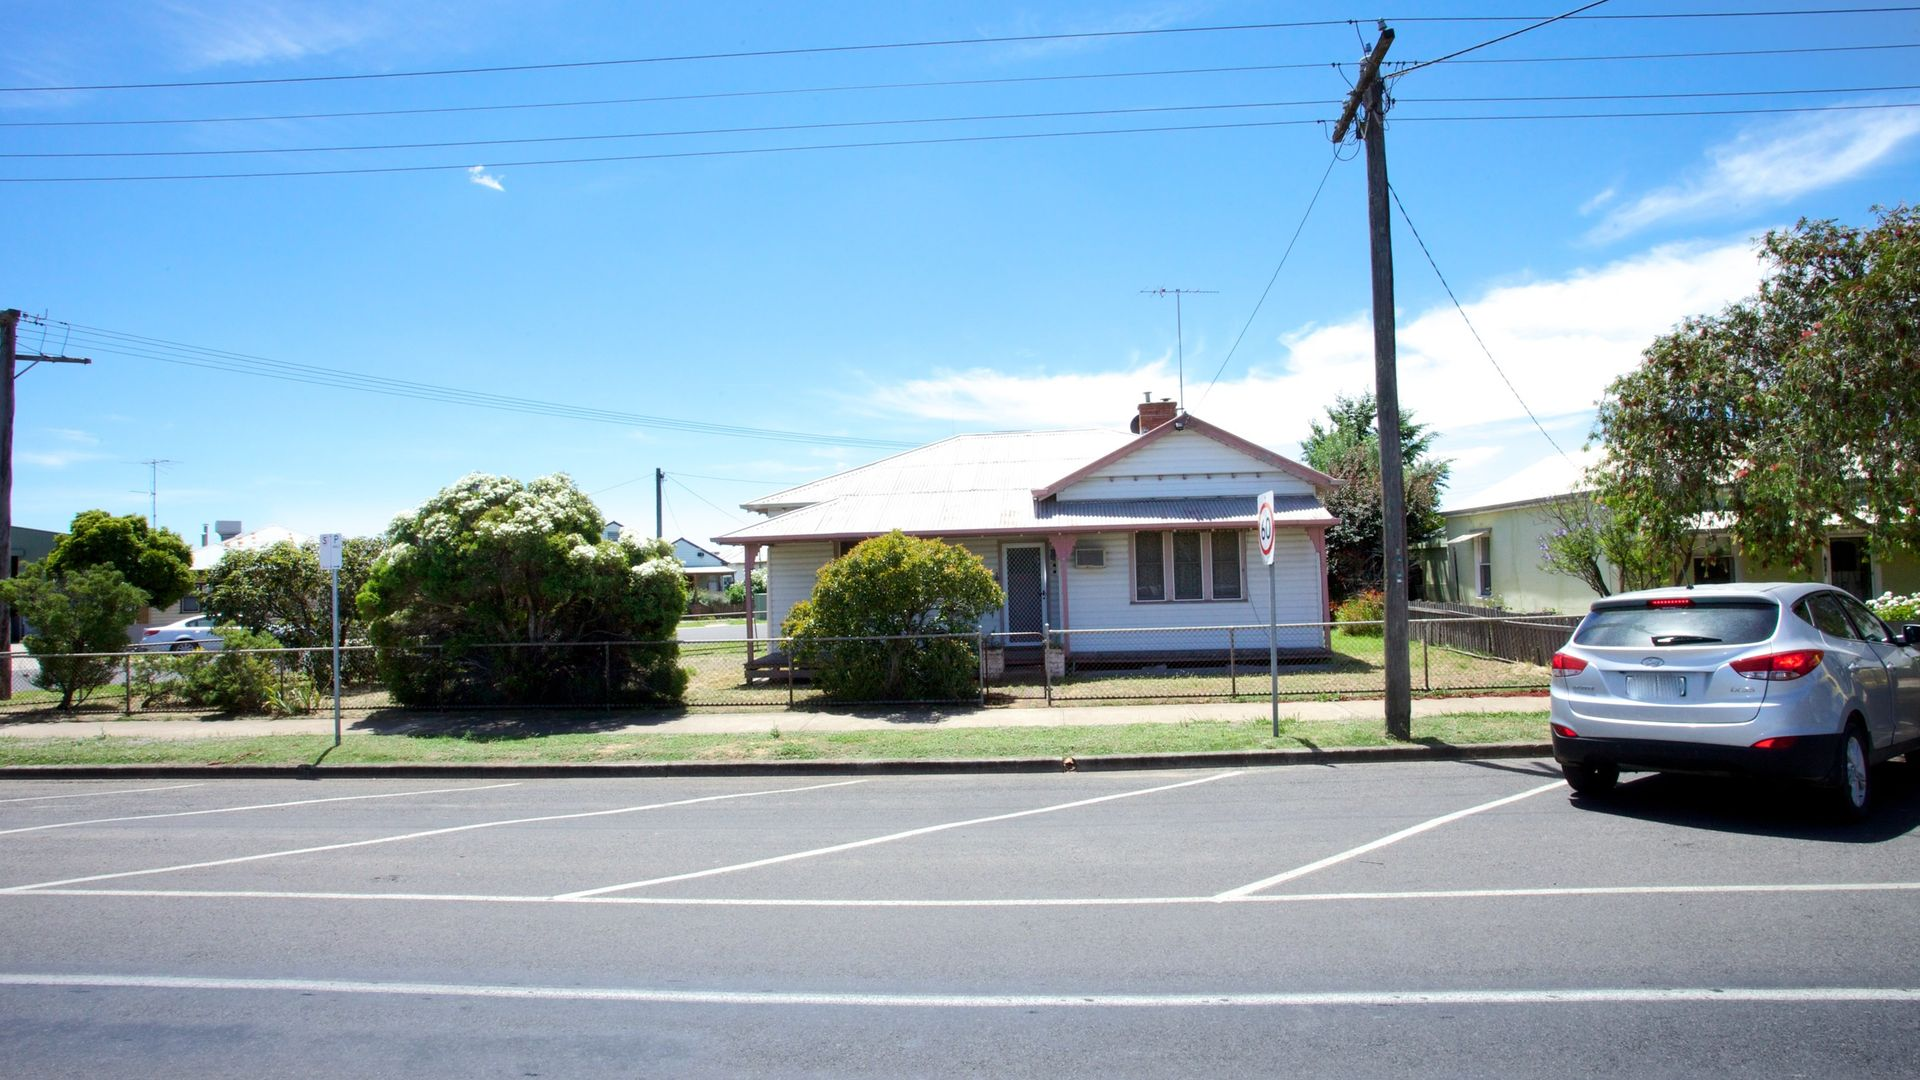 25 O'Callaghans Parade, Horsham VIC 3400, Image 1